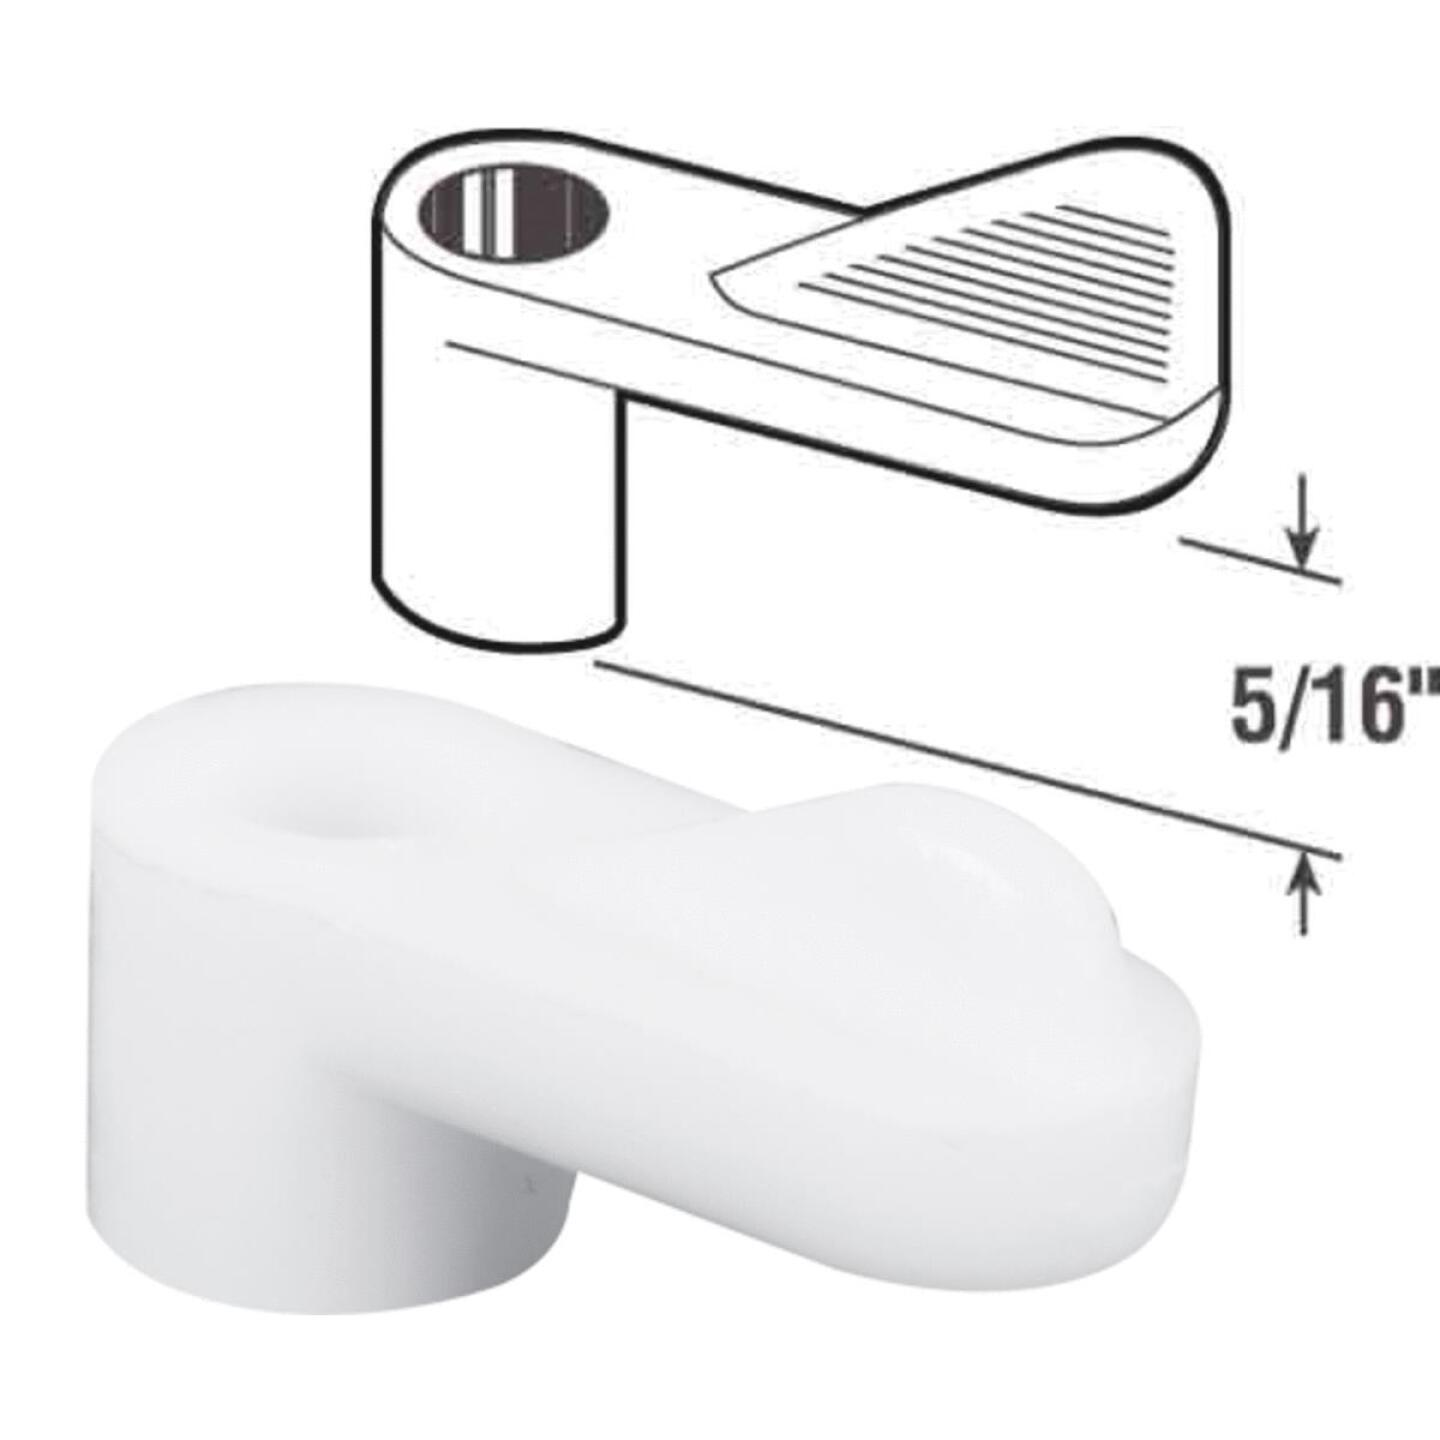 Prime-Line 5/16 In. White Swivel Plastic Screen Clips with Screws (12 Count) Image 1